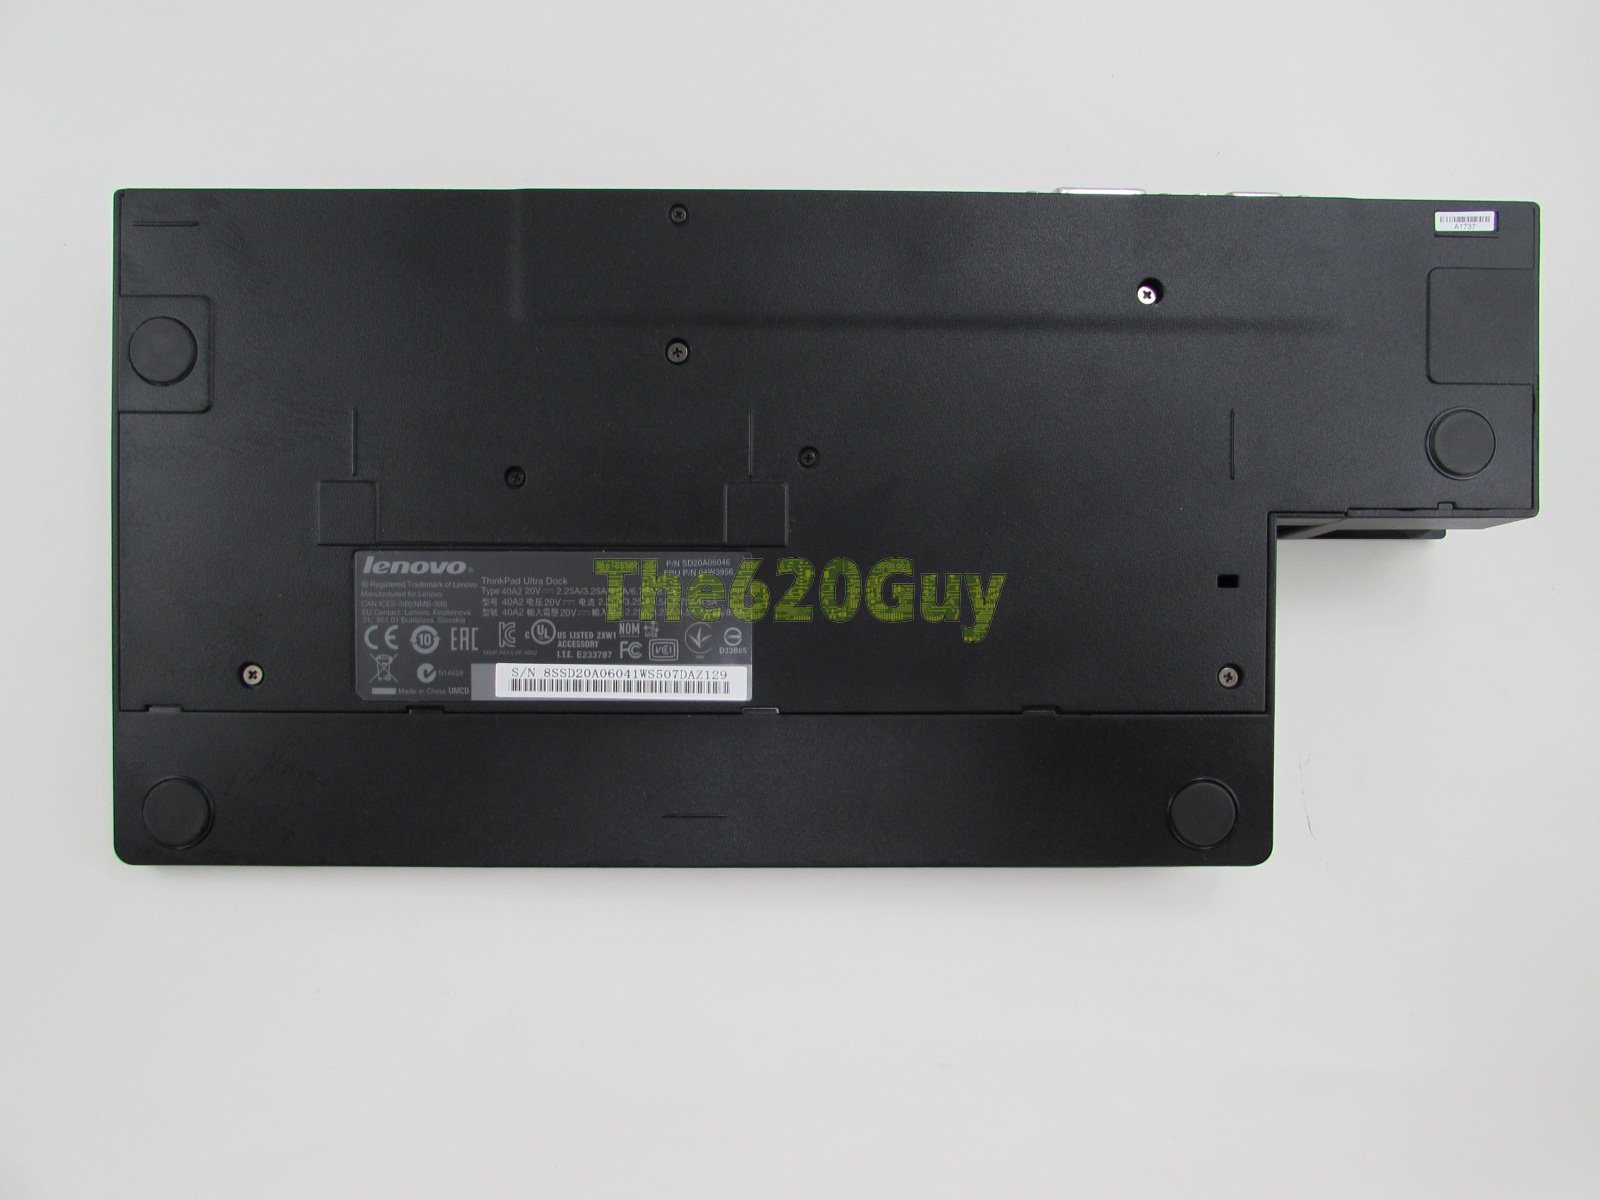 Details about Lenovo ThinkPad Ultra Dock 04W3956 X250 T440s T450s T450p  T460s T470s P50s P51s